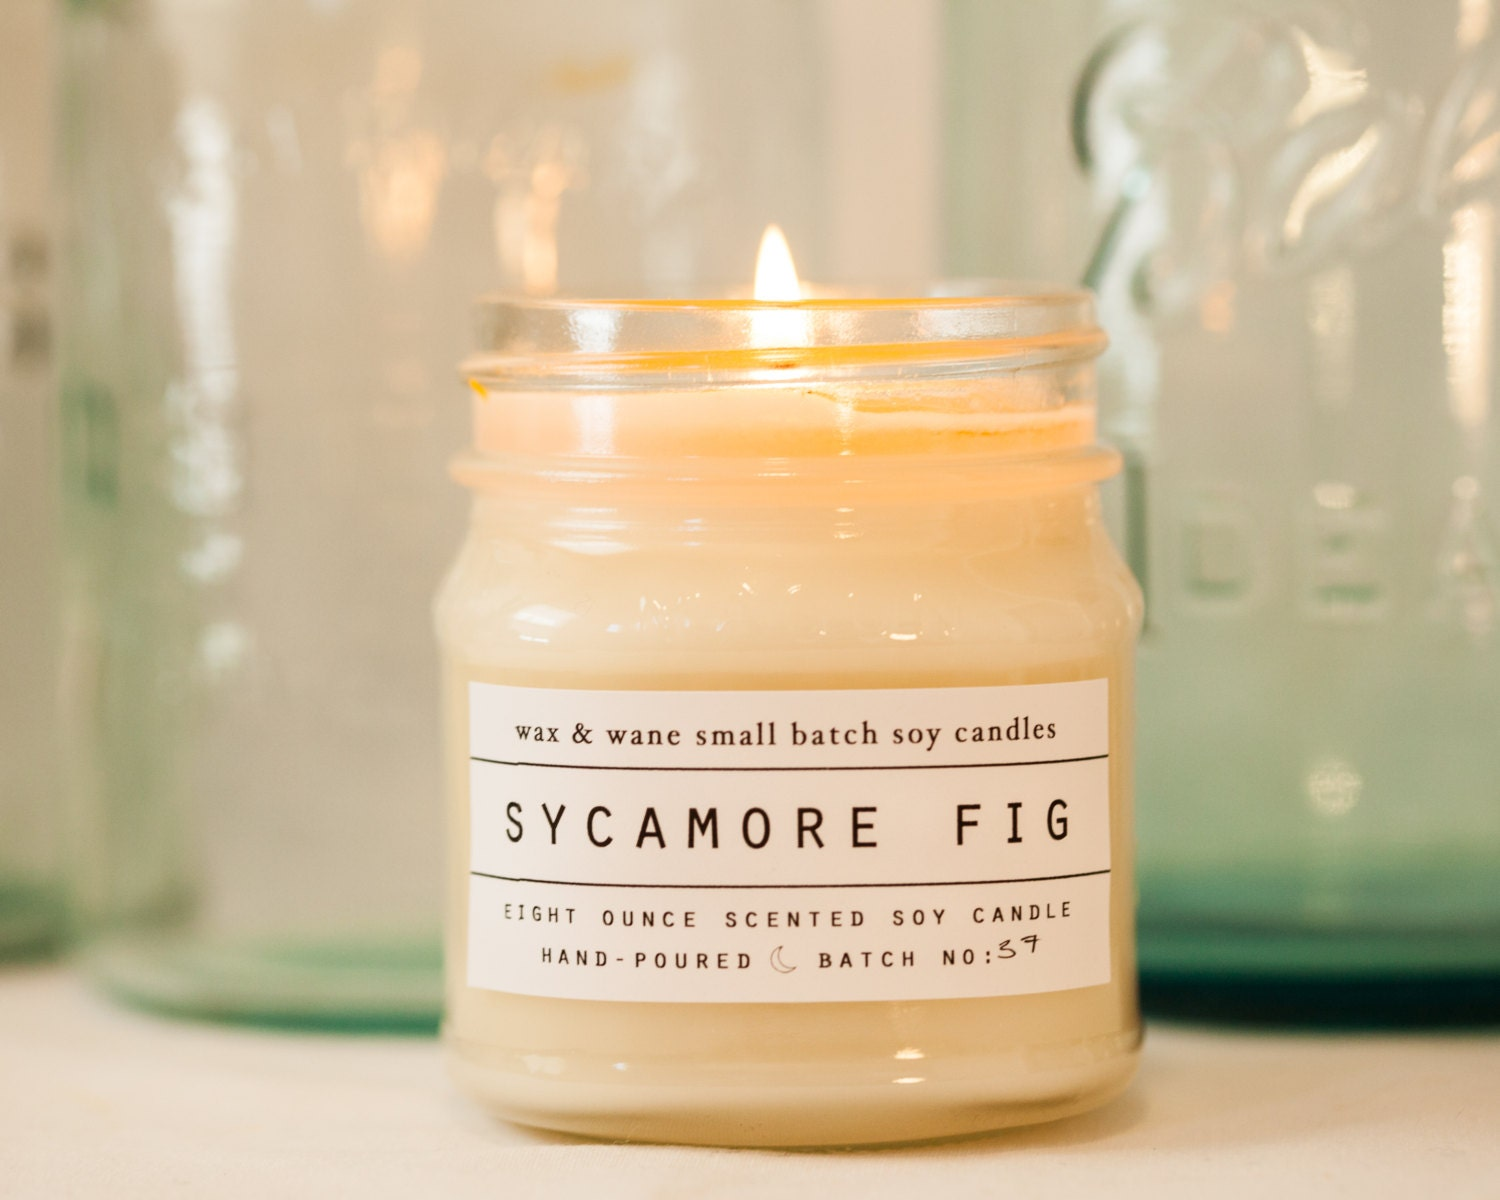 sycamore fig soy candle scented candle unique gifts for